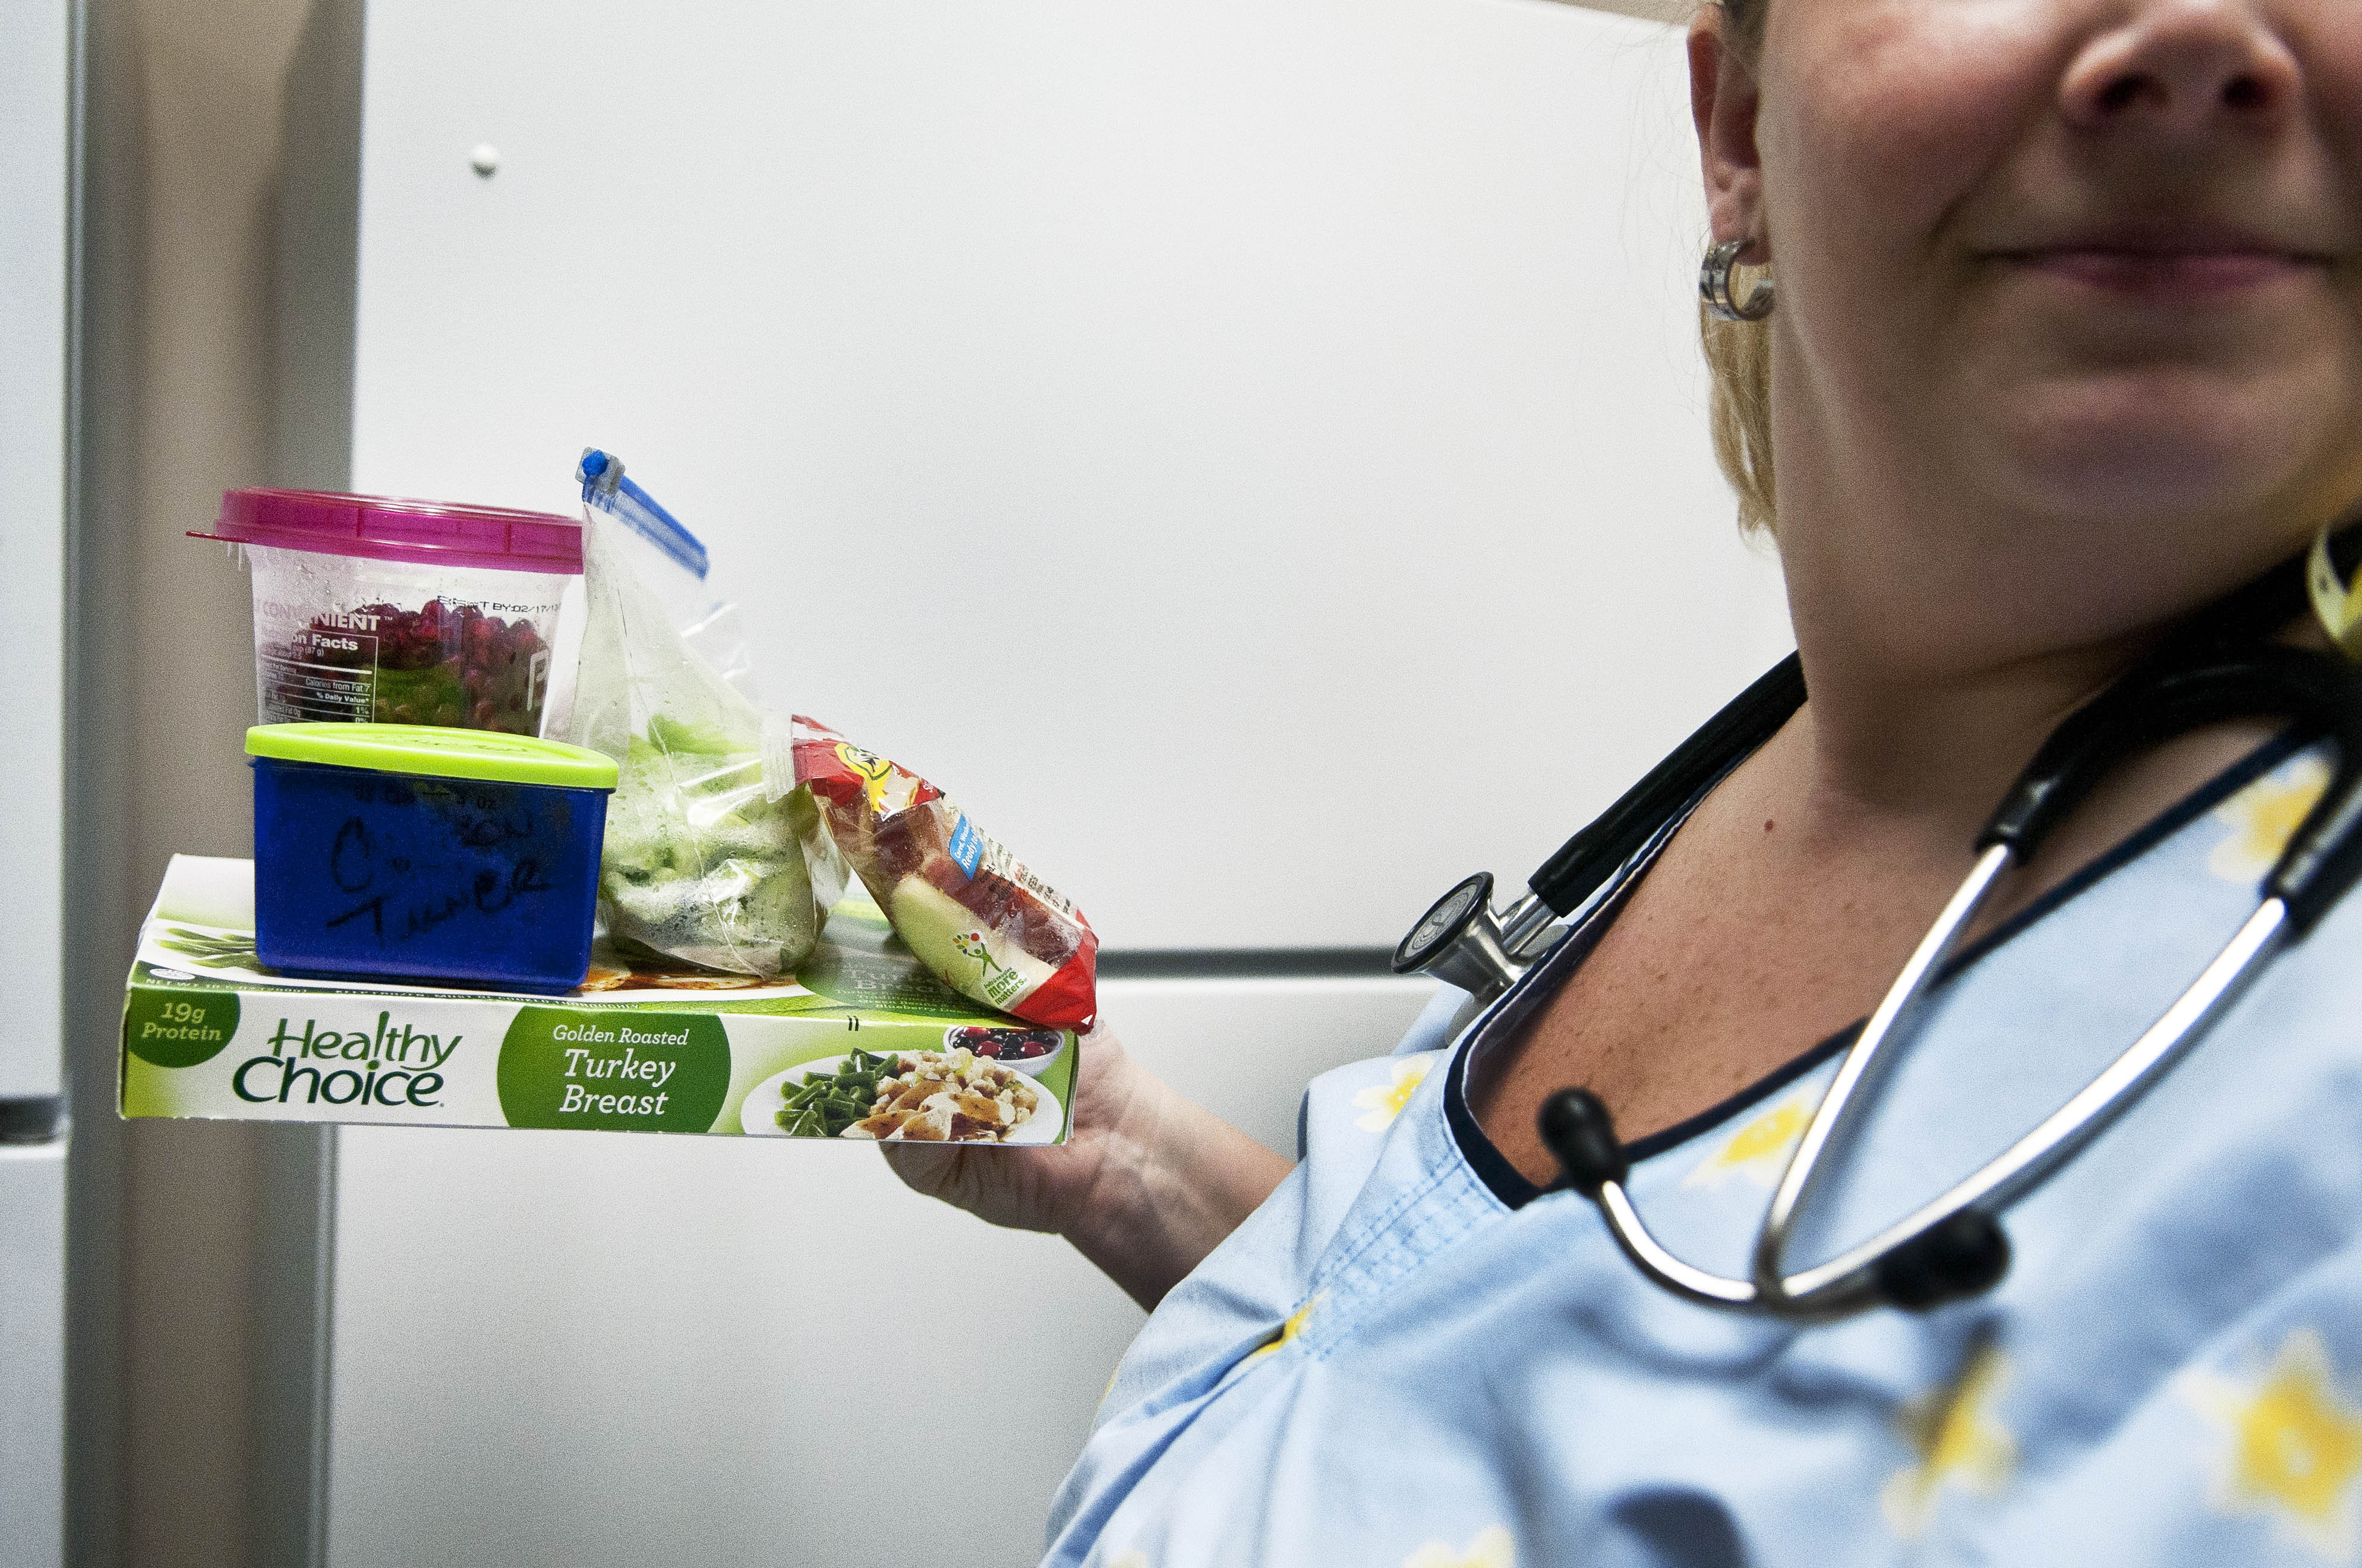 Nurse Peggy Renzi makes the effort to bring a healthy lunch to work every day instead of buying snacks from the vending machines or grabbing fast food.